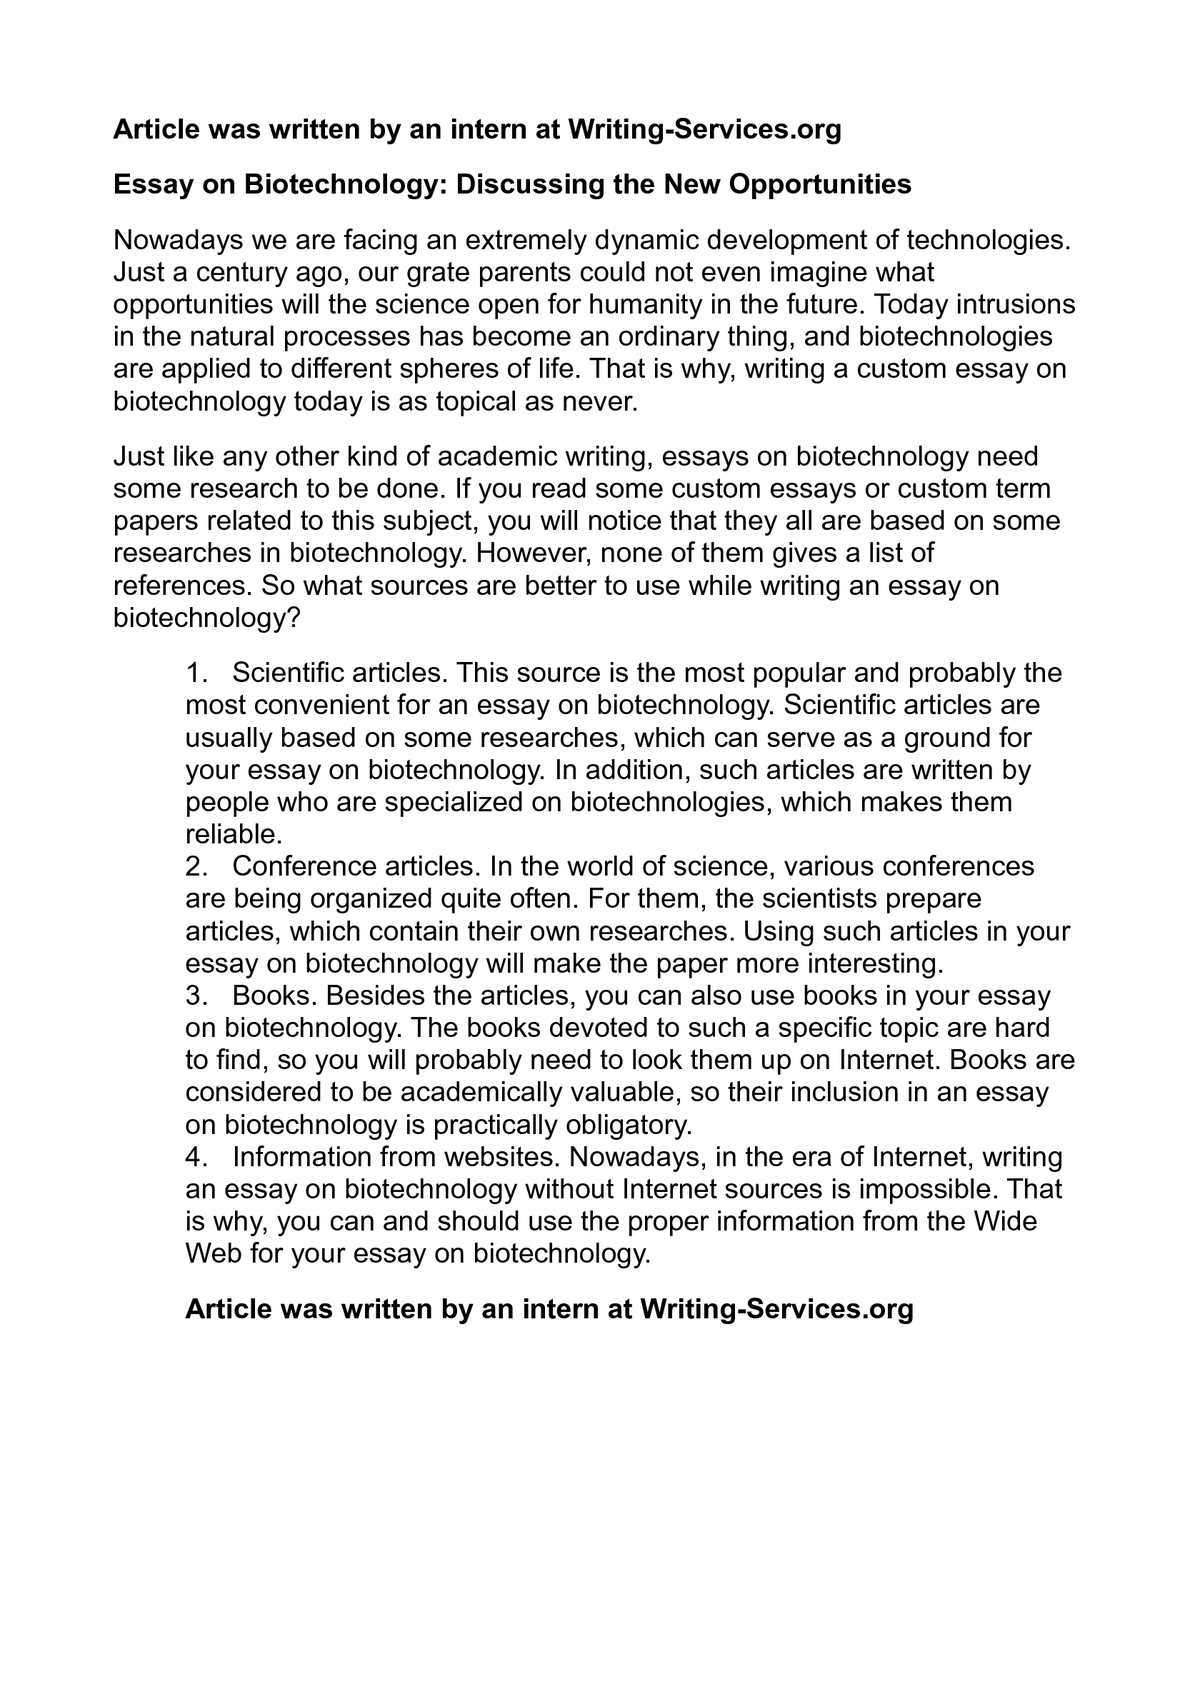 Biotechnology essay topics how to write an essay objectively